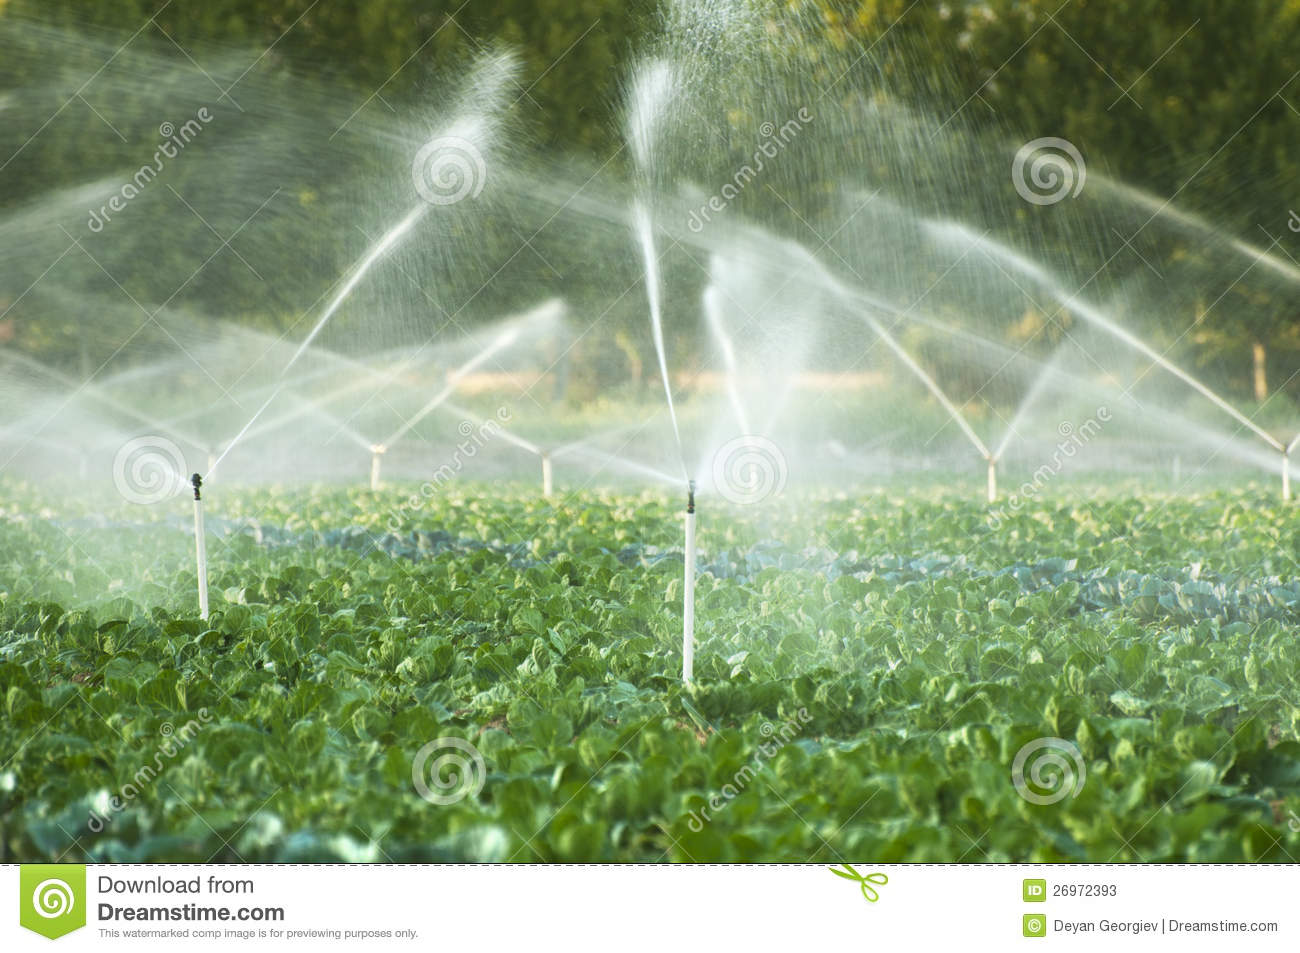 Irrigation Systems In A Vegetable Garden. Gardening, Crop.